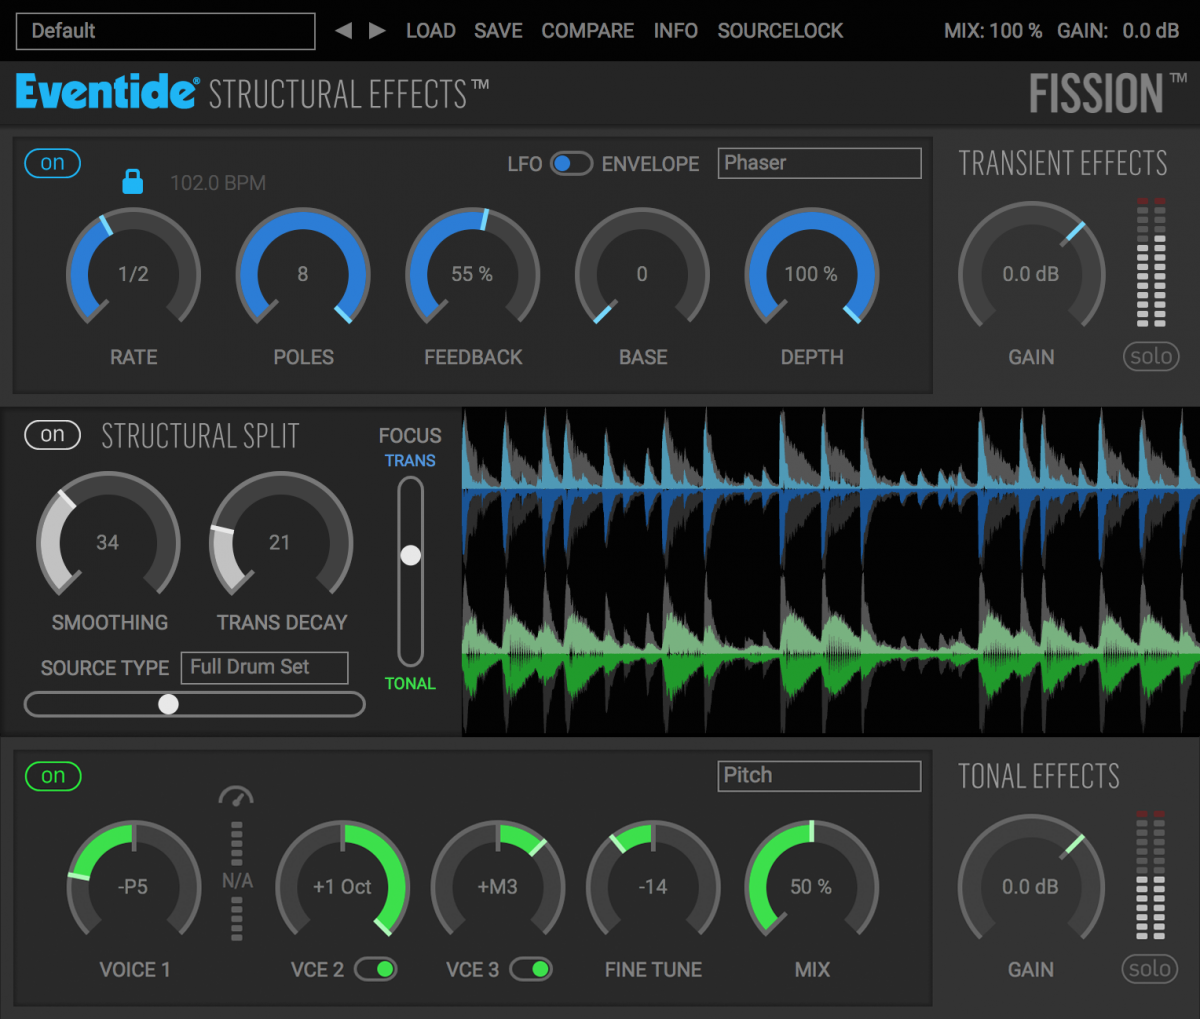 Eventide Fission GUI